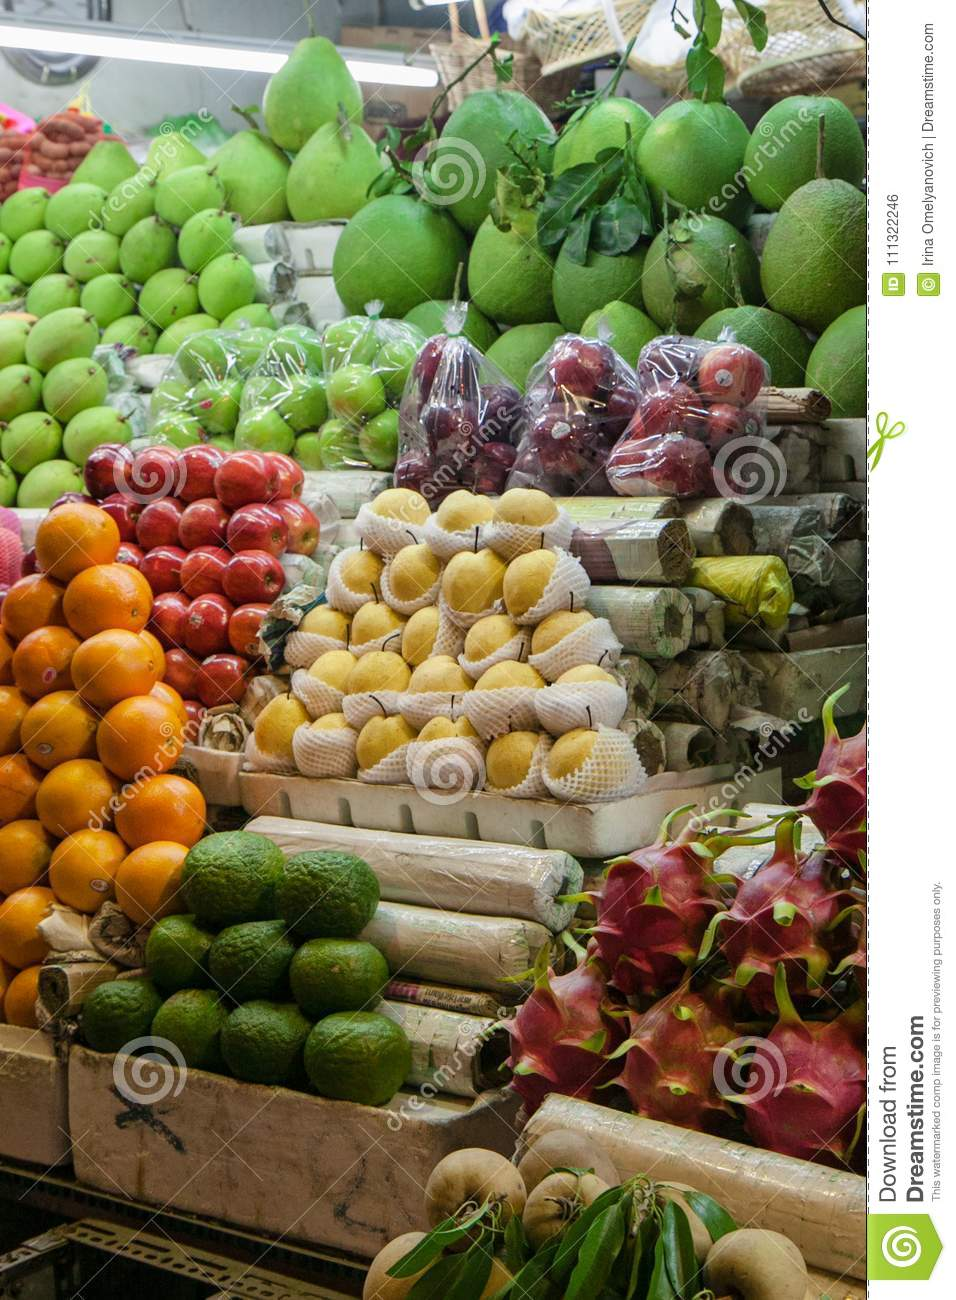 Countertop With Tropical Fruits In Vietnam Stock Photo Image Of Shiny Counter 111322246